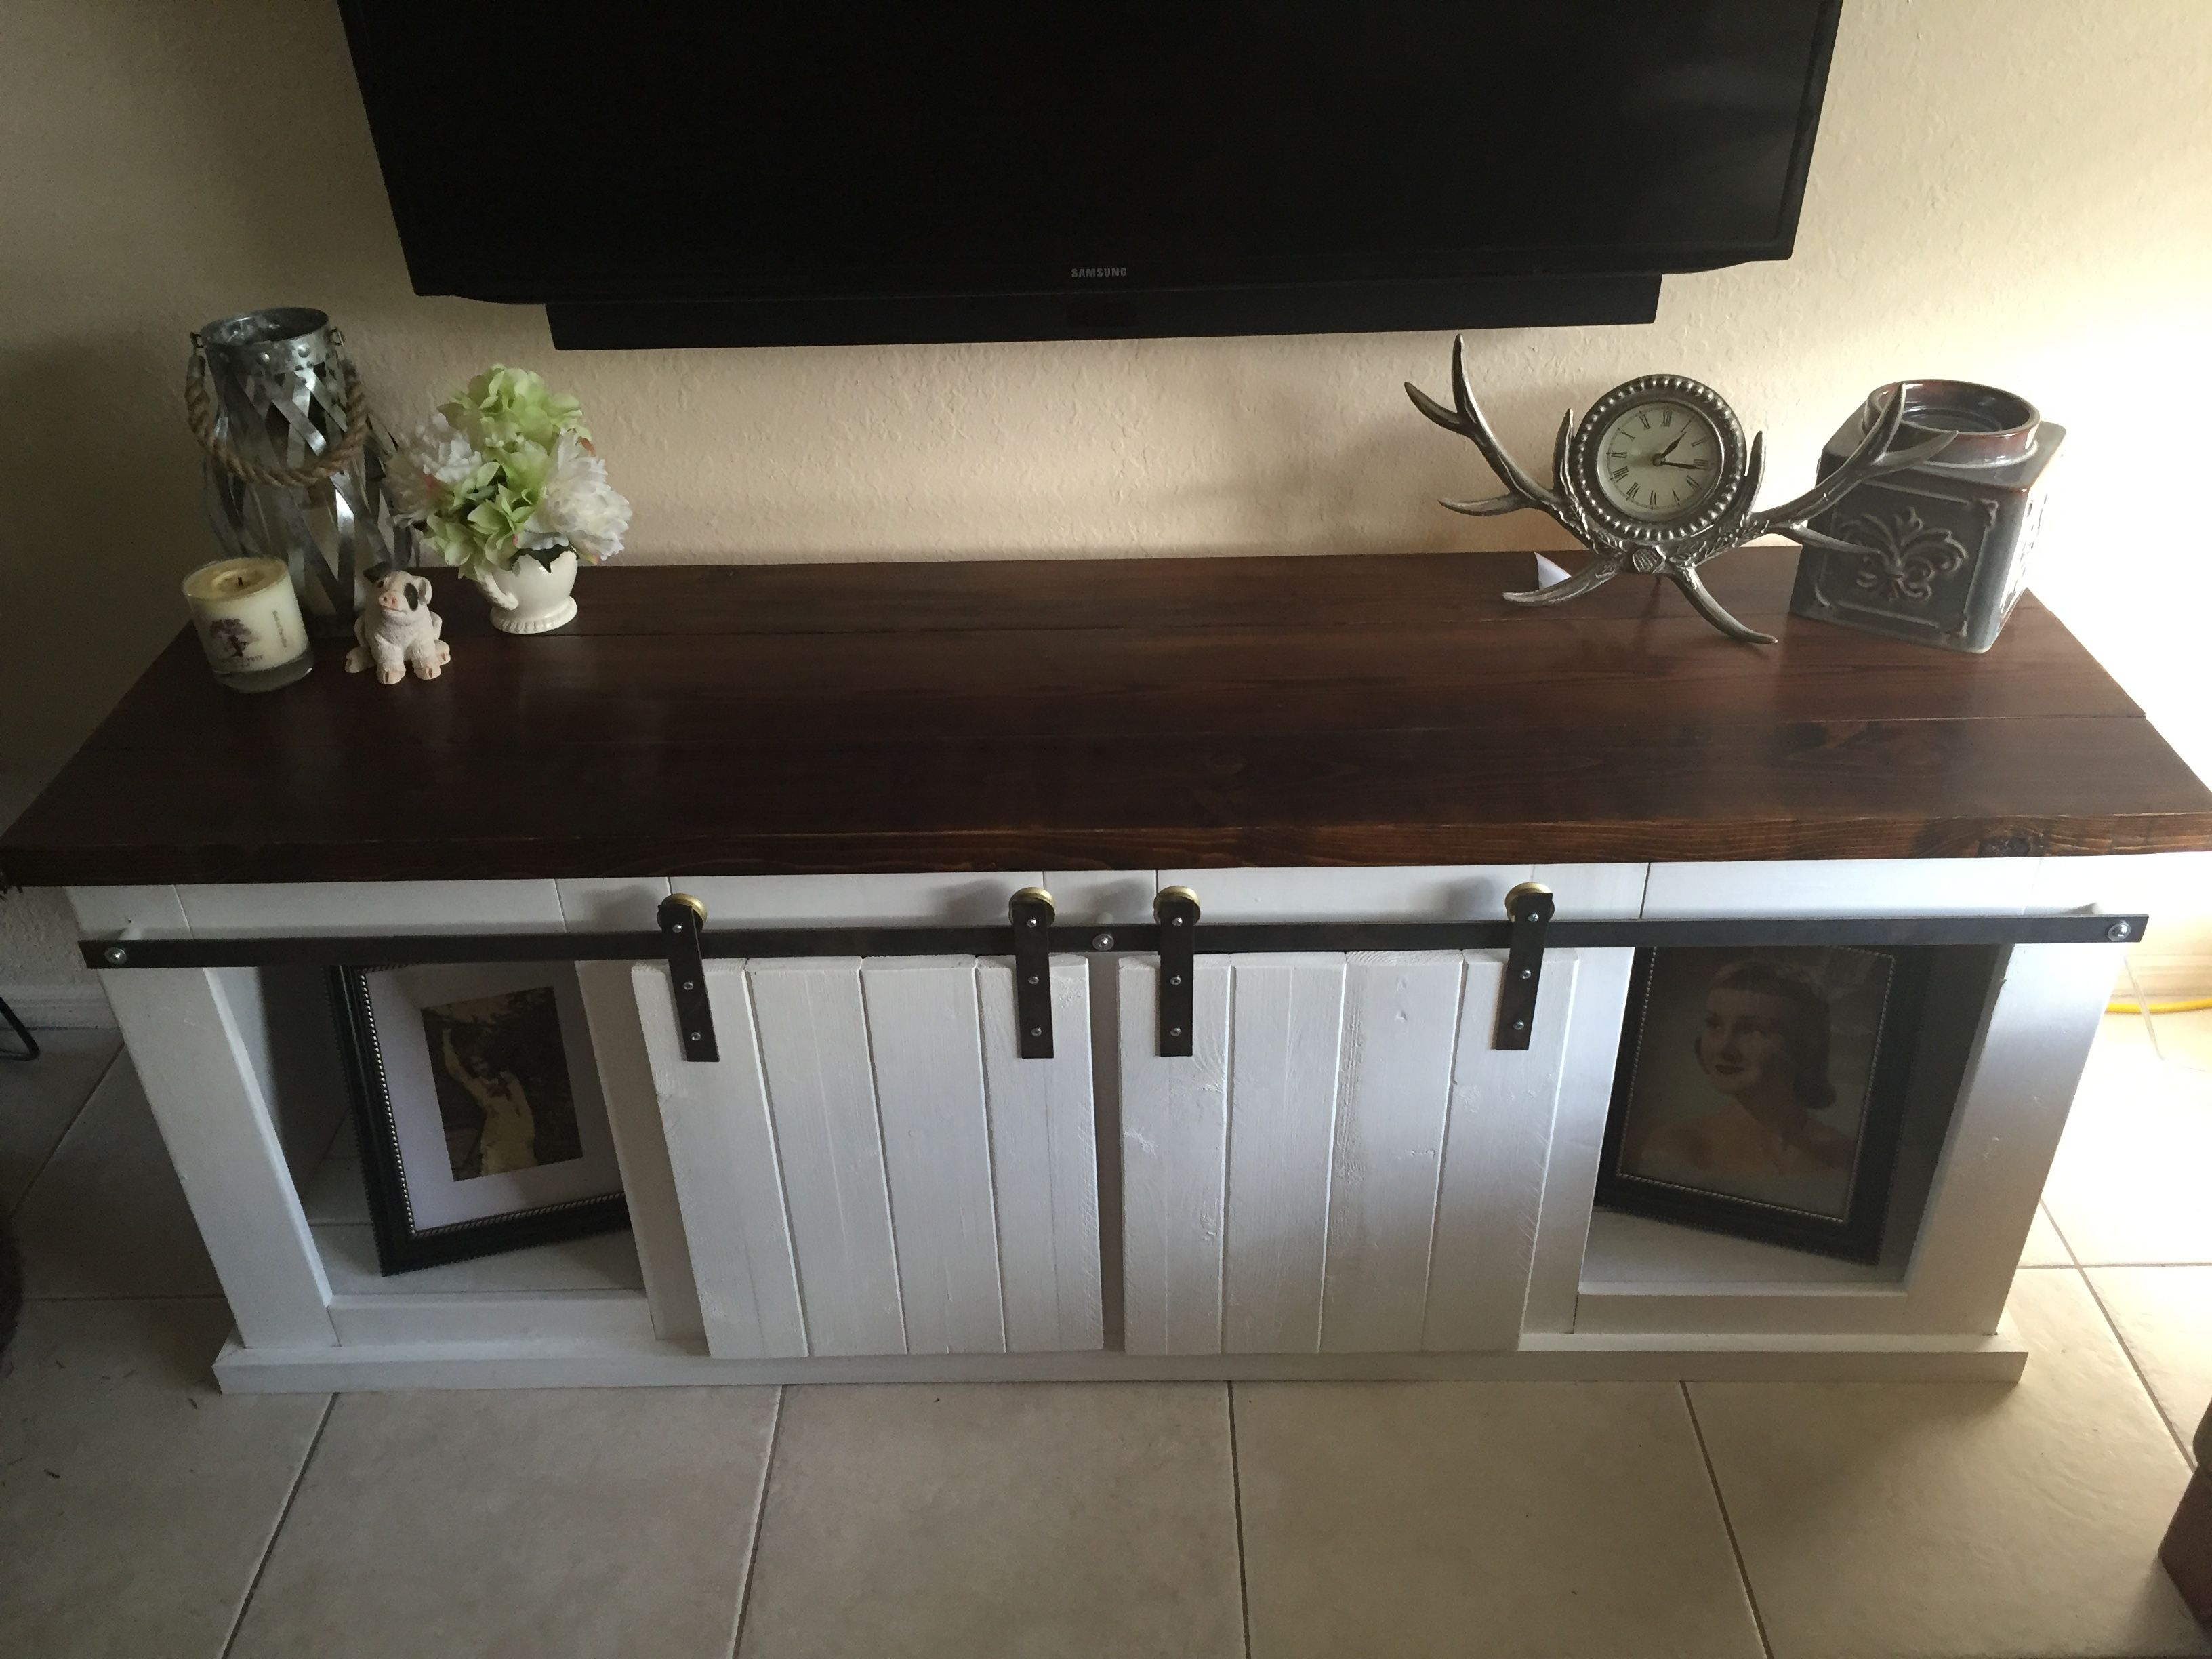 Grandy TV Stand Do It Yourself Home Projects from Ana